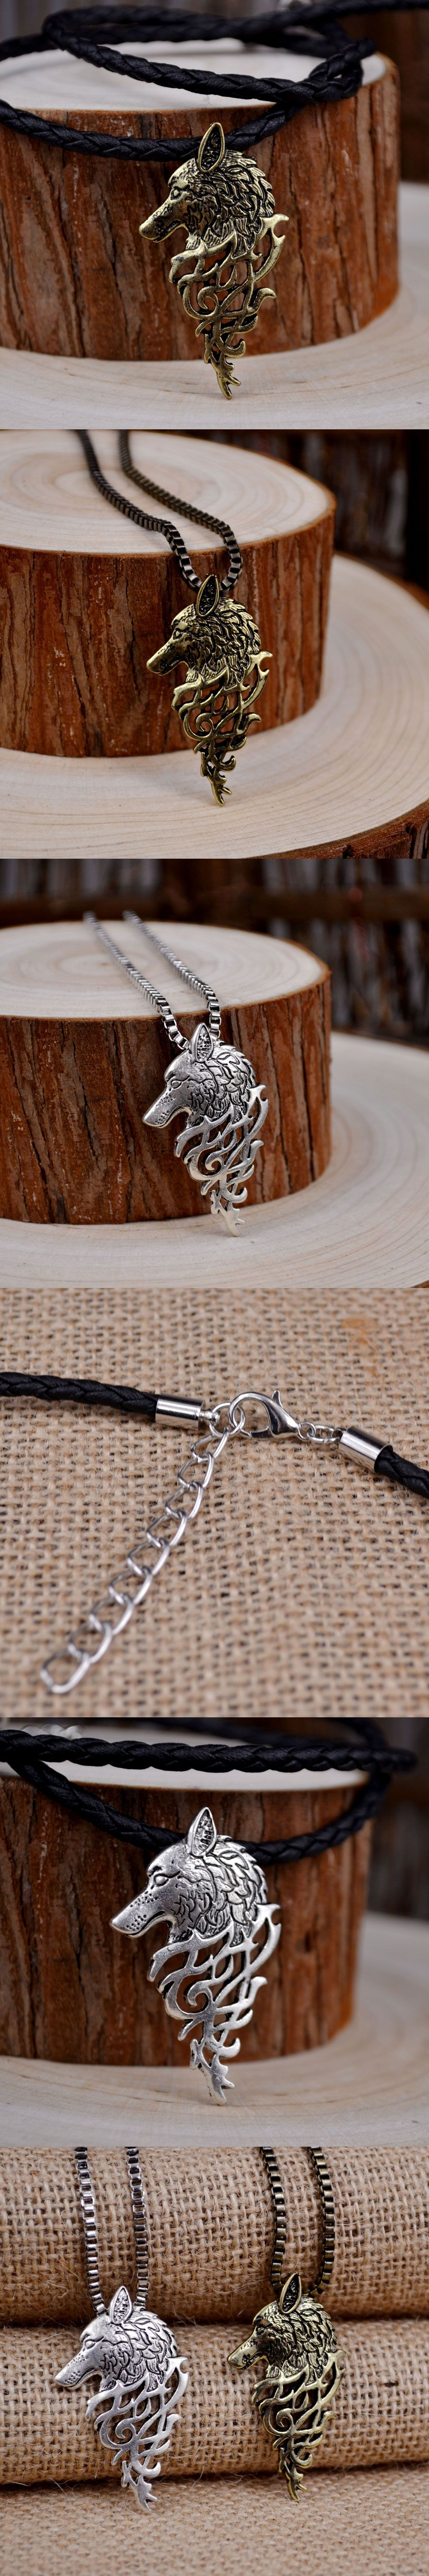 helsing fullxfull wolf il head animal listing necklace van zoom pendant